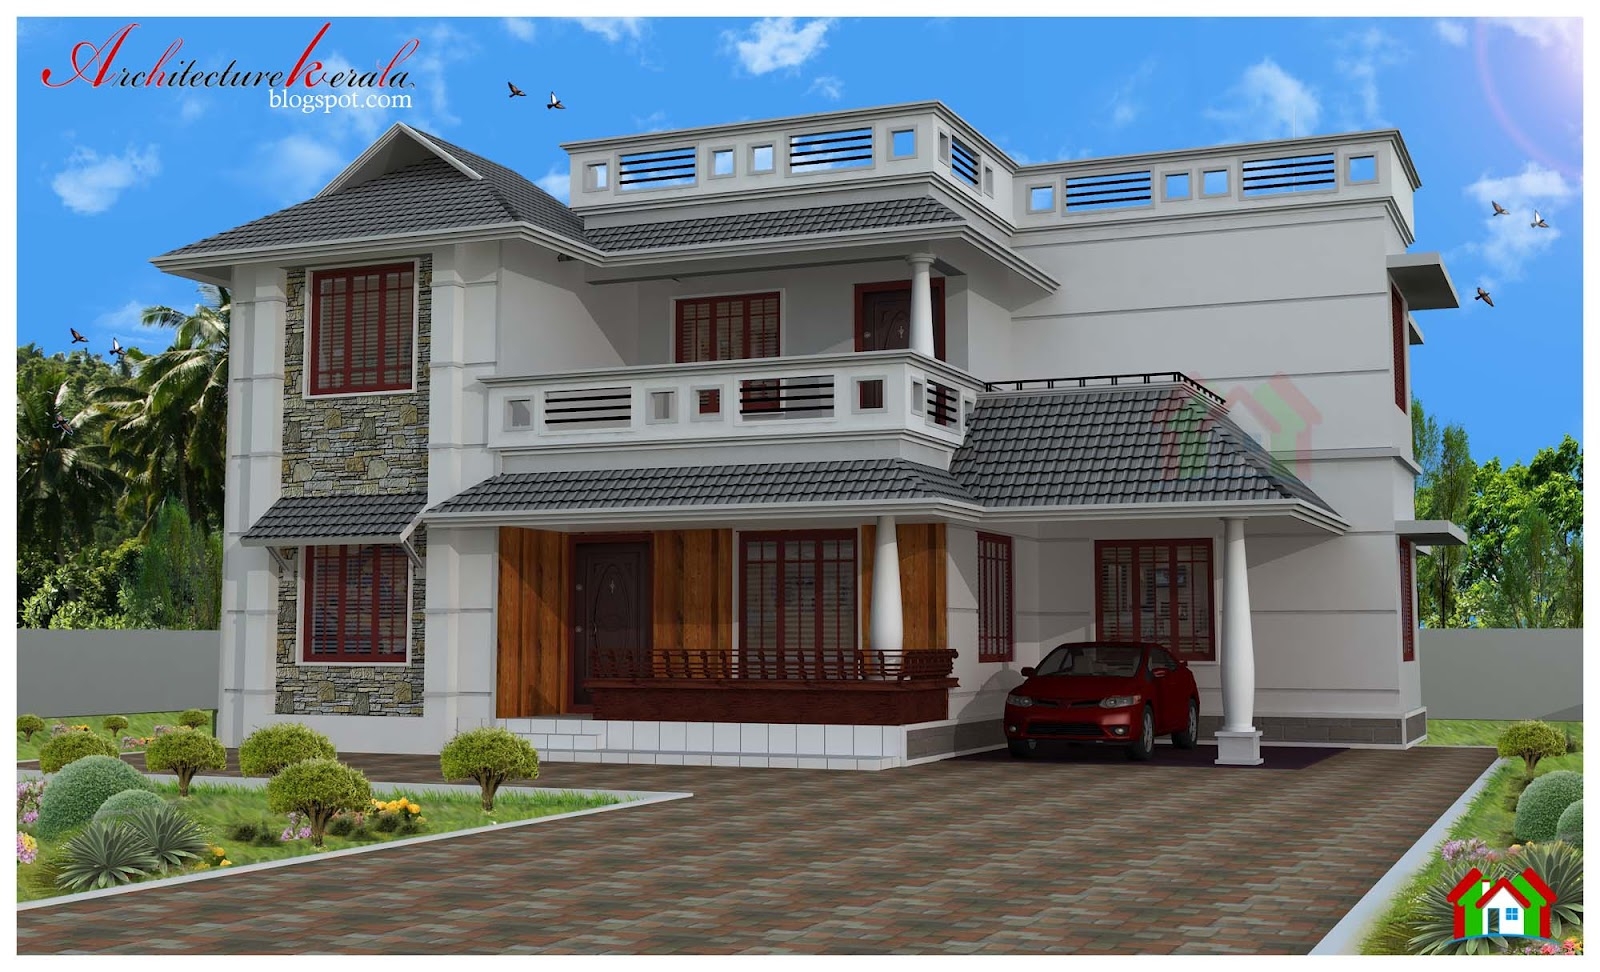 Architecture kerala four bed room house plan for Home plas